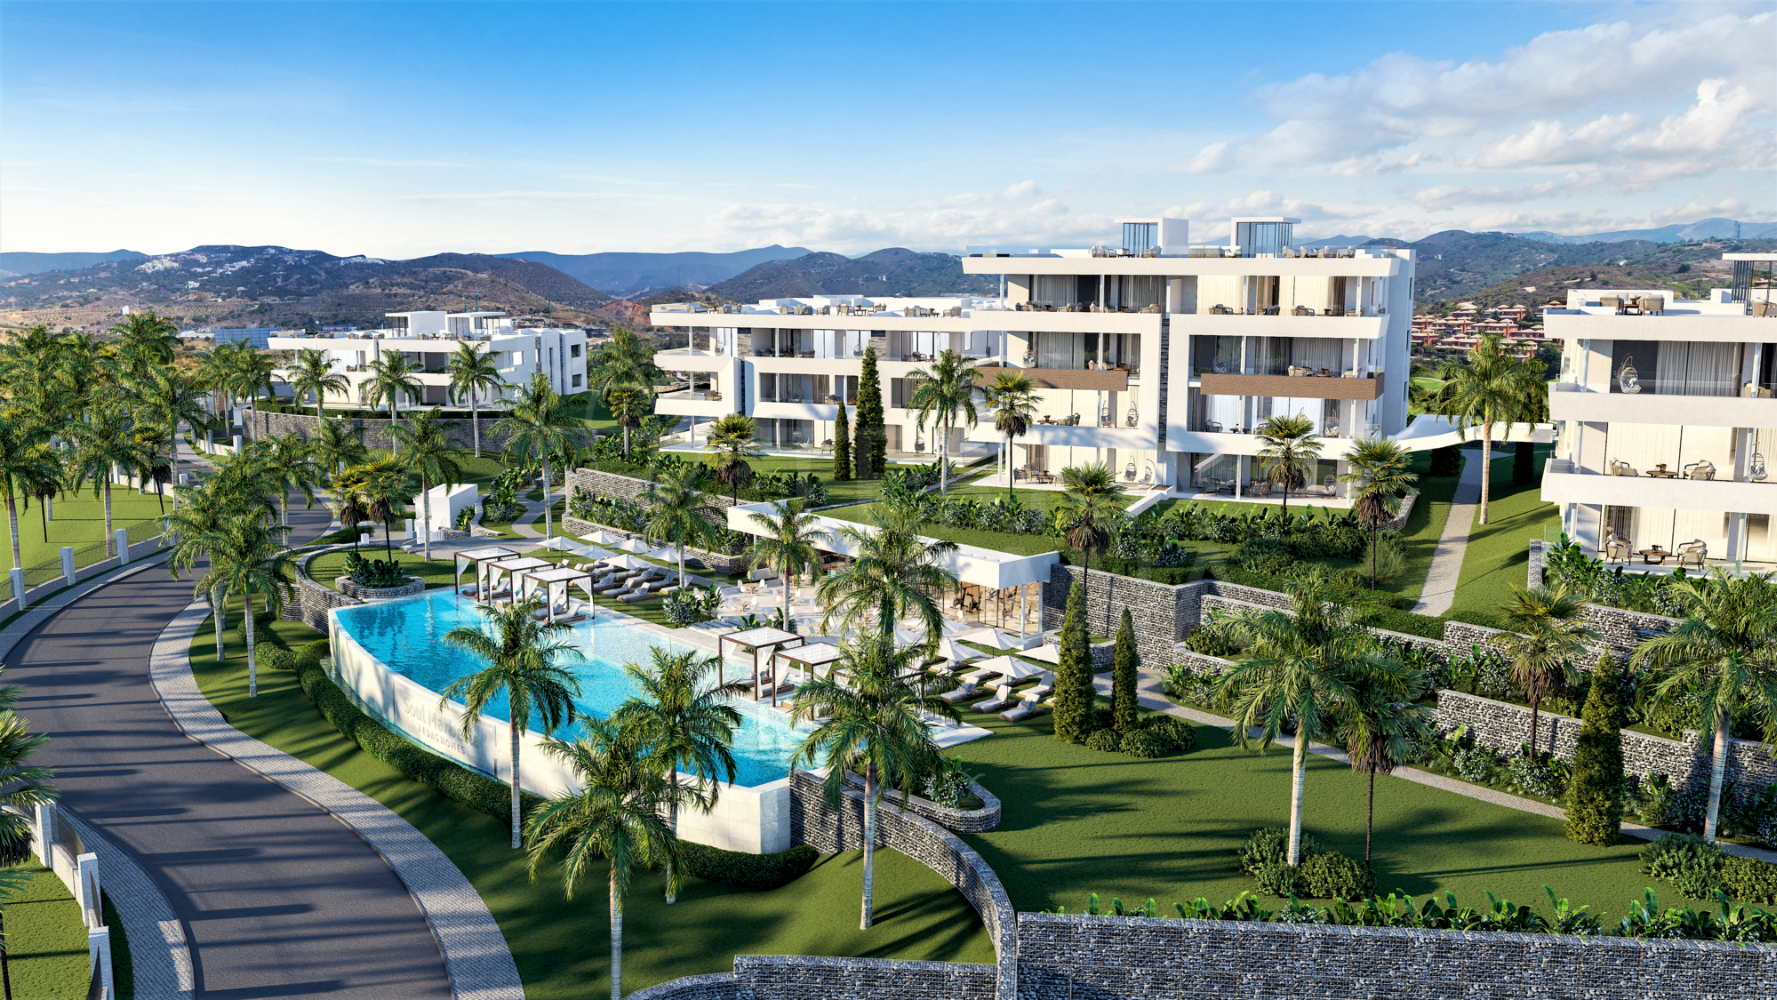 Soul Marbella, Marbella East - A deluxe development boasting 5-star resort facilities in Soul Marbella , Santa Clara, Marbella East